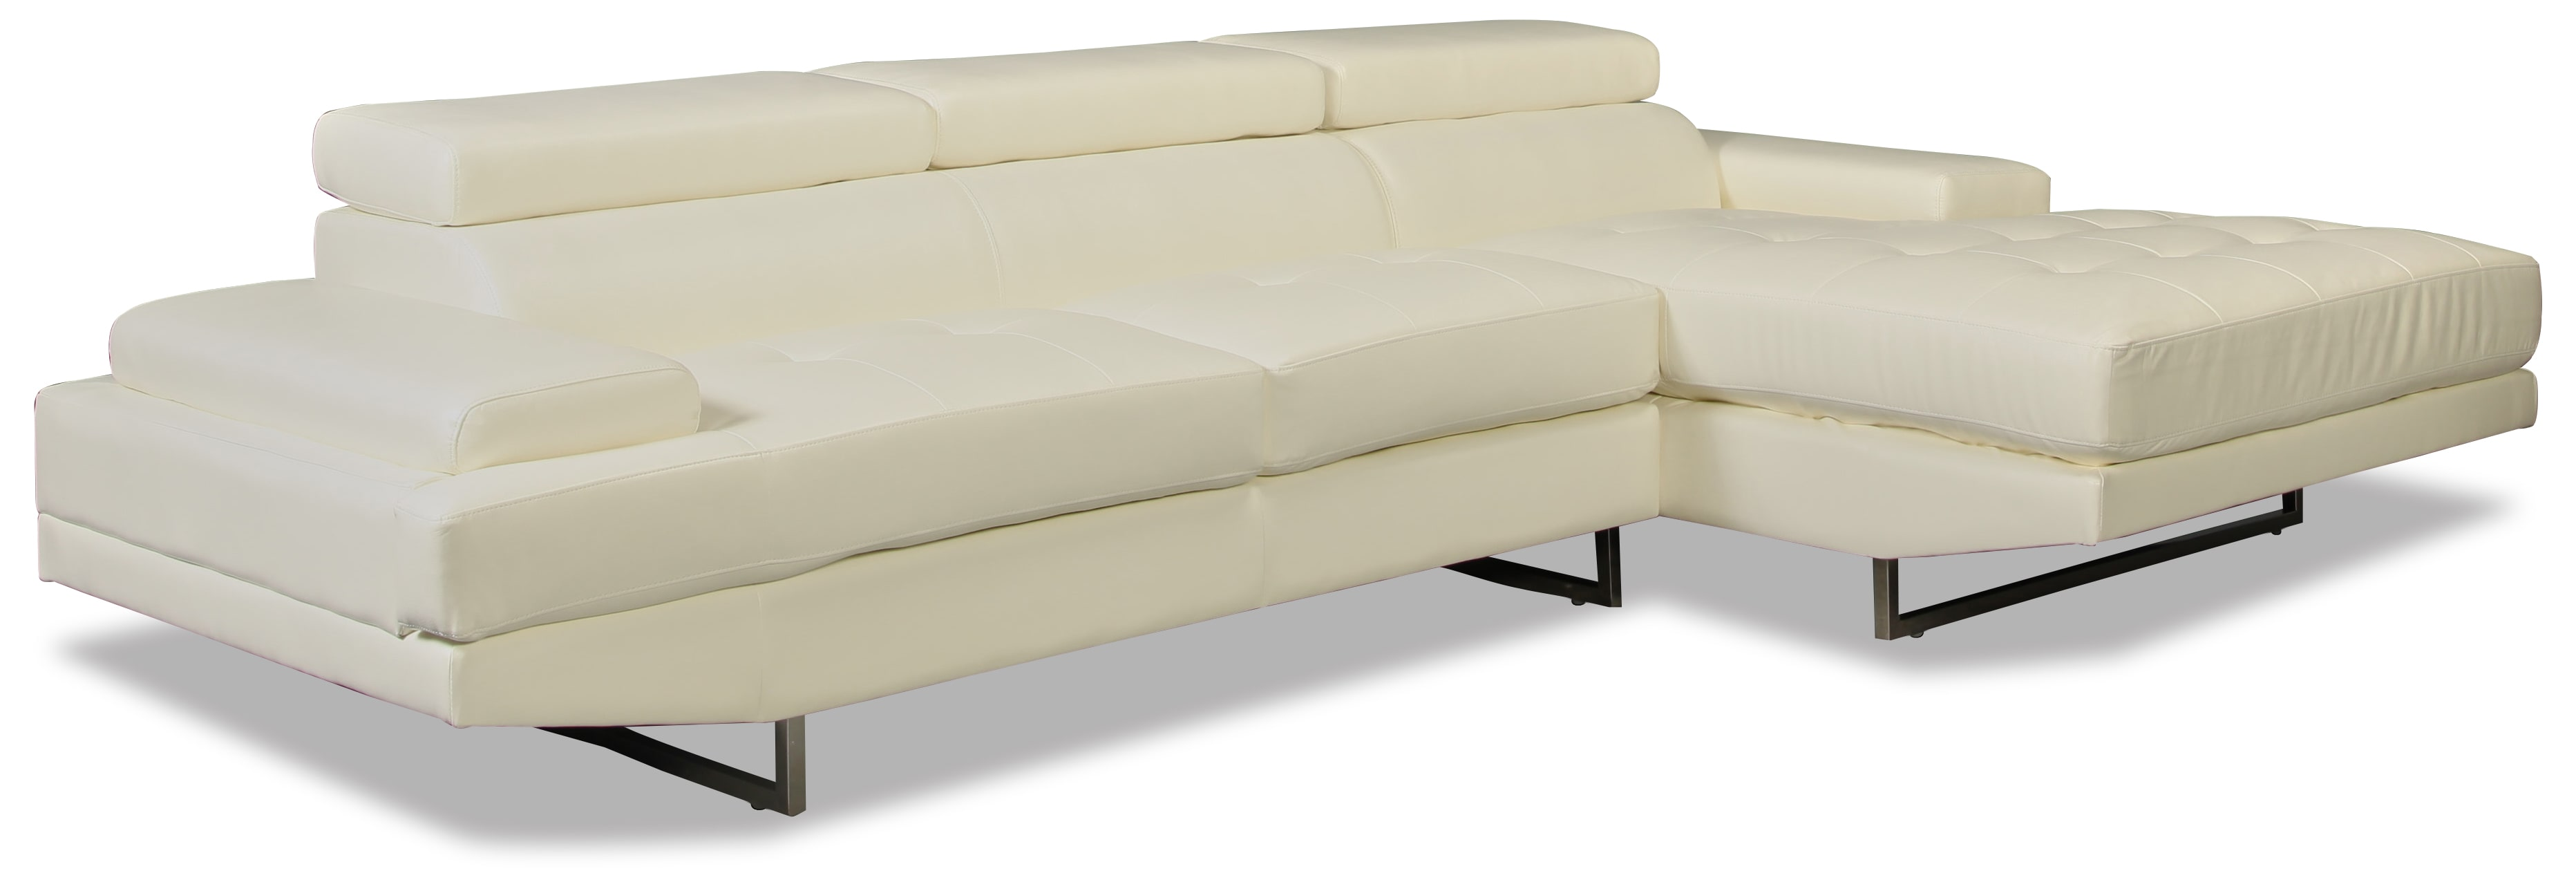 The Captiva Collection - White